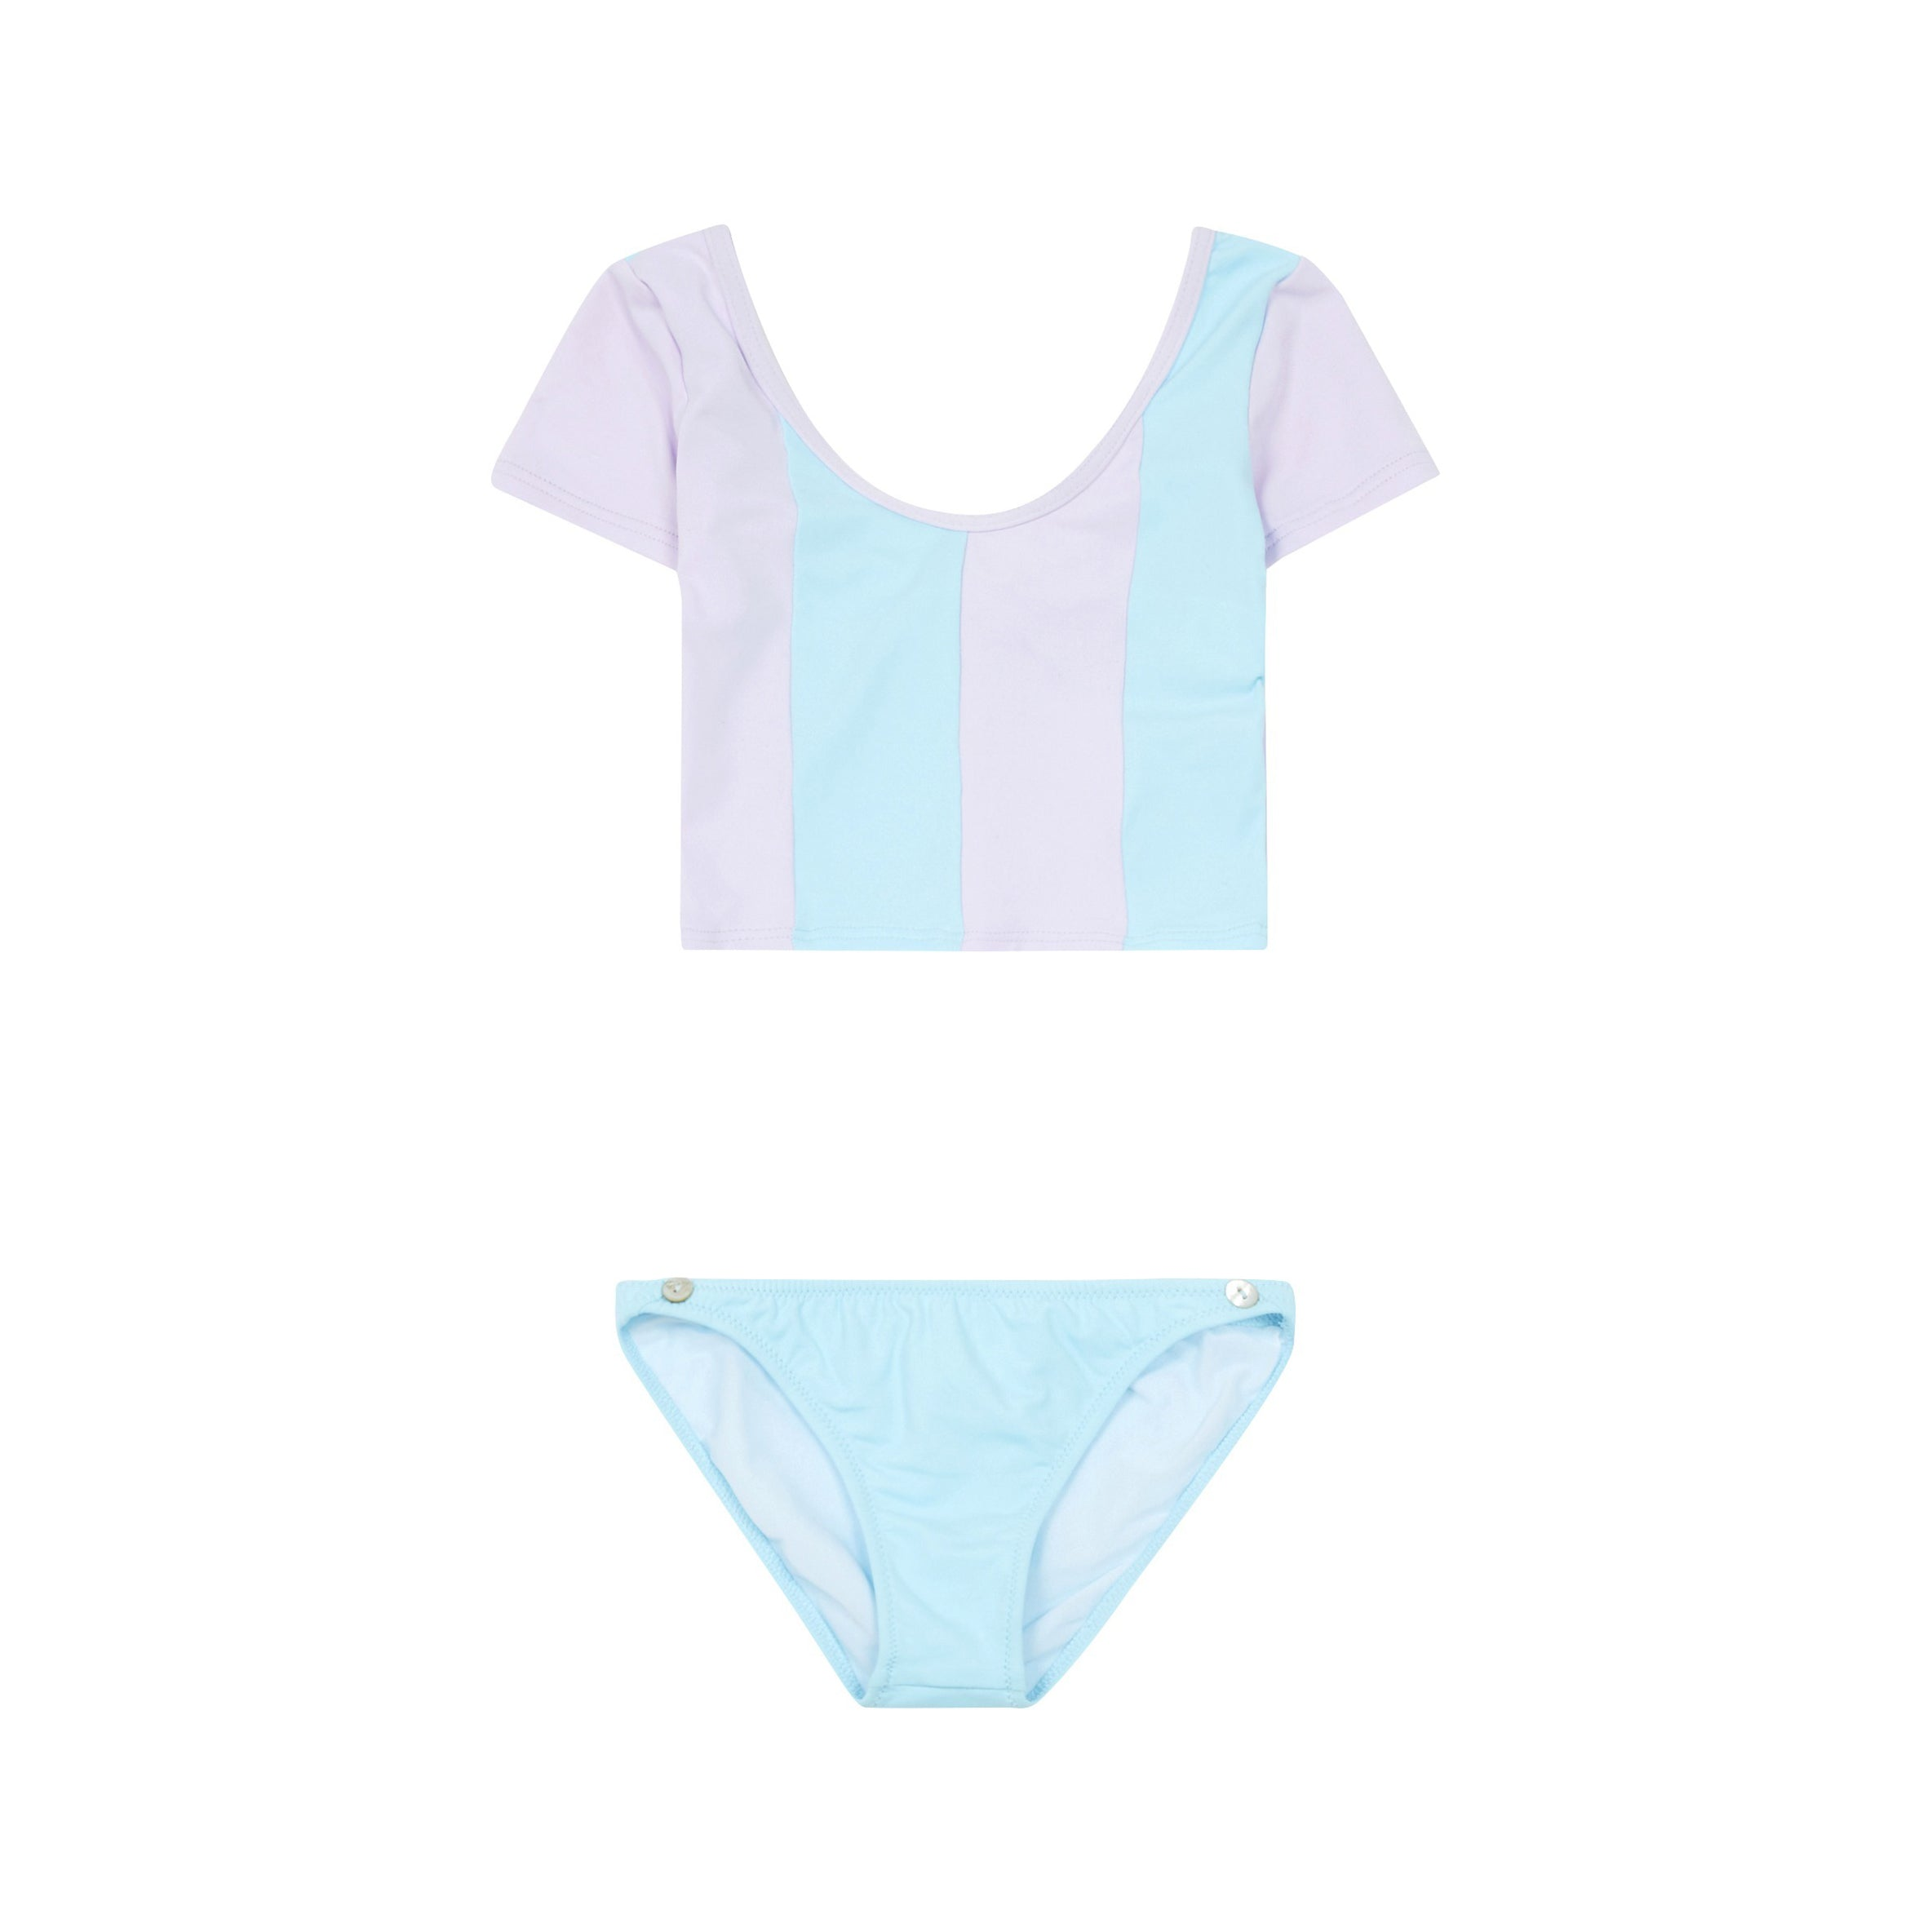 Pacific Rainbow Sally Two-Piece Kid's Cropped Top Bikini Swimsuit Lilac/Celestial Blue | BIEN BIEN